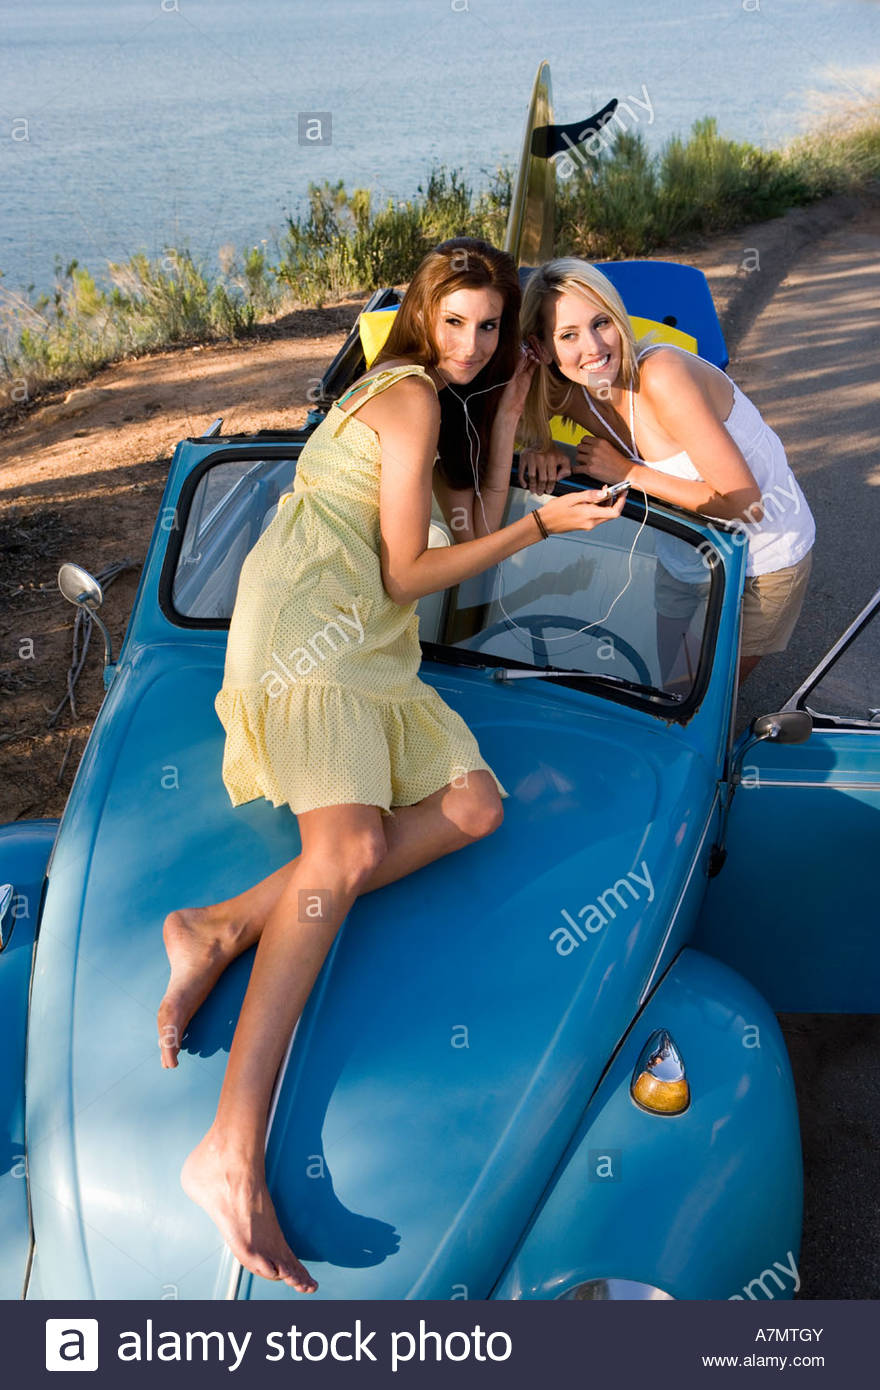 Teenage girls 17 19 listening to MP3 player on car bonnet sharing headphones elevated view Stock Photo